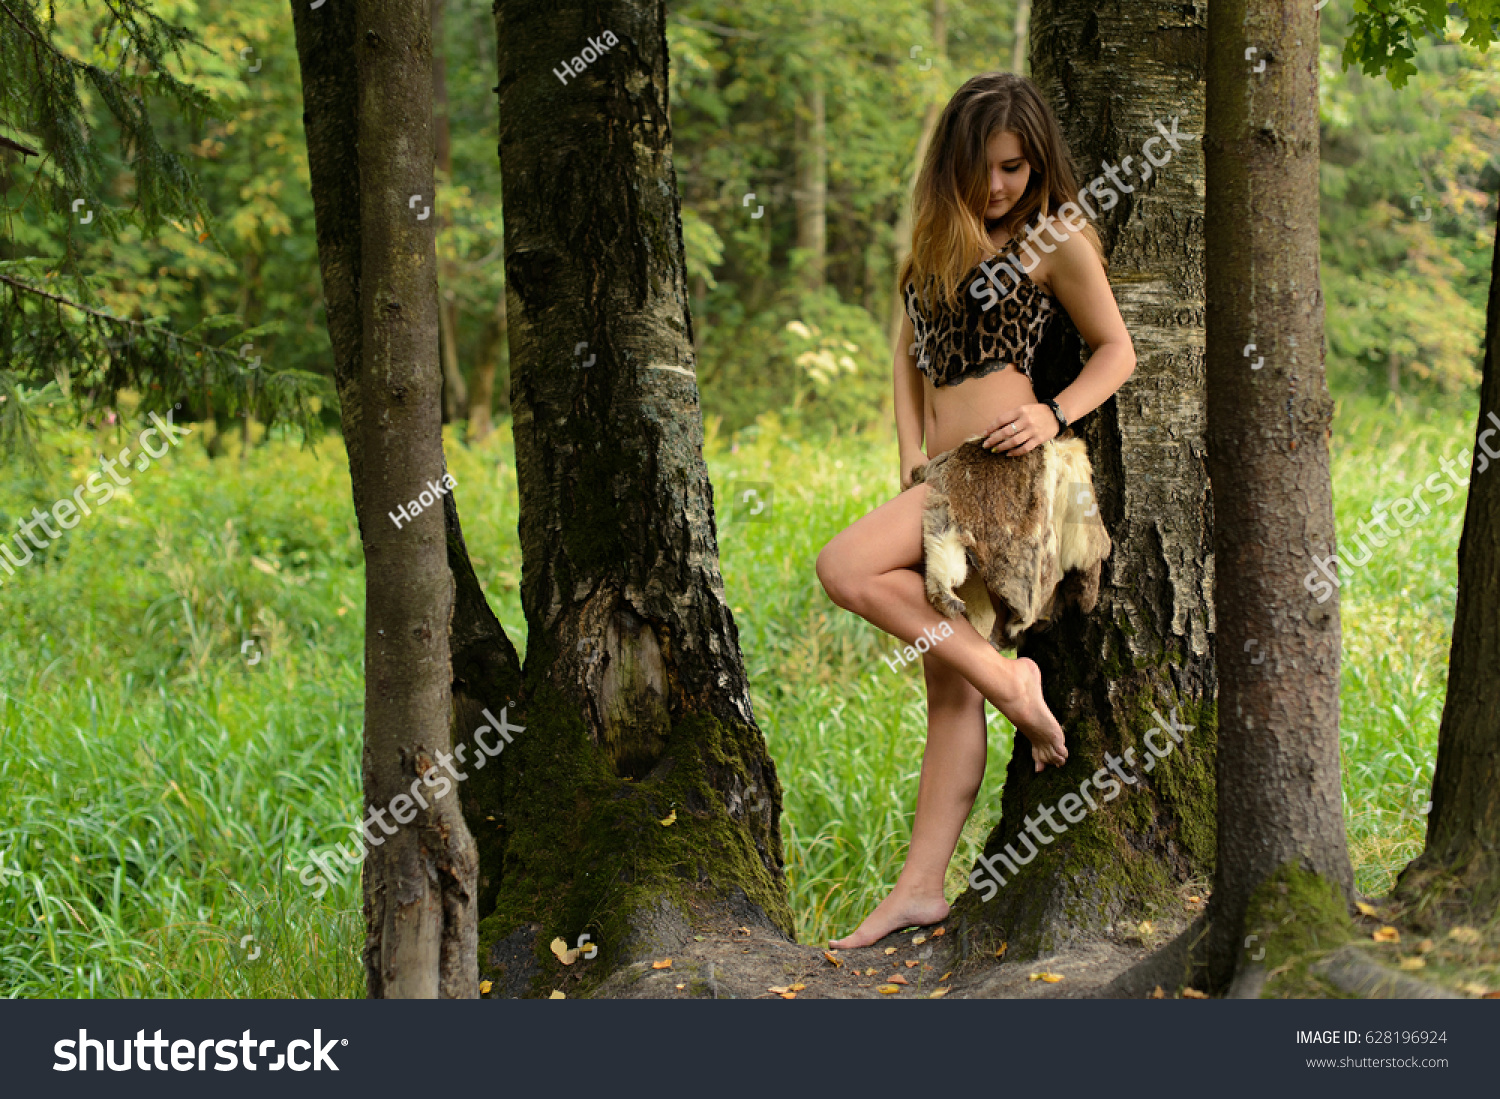 https://image.shutterstock.com/z/stock-photo-young-girl-hunter-in-furs-in-a-forest-leaned-against-a-tree-628196924.jpg